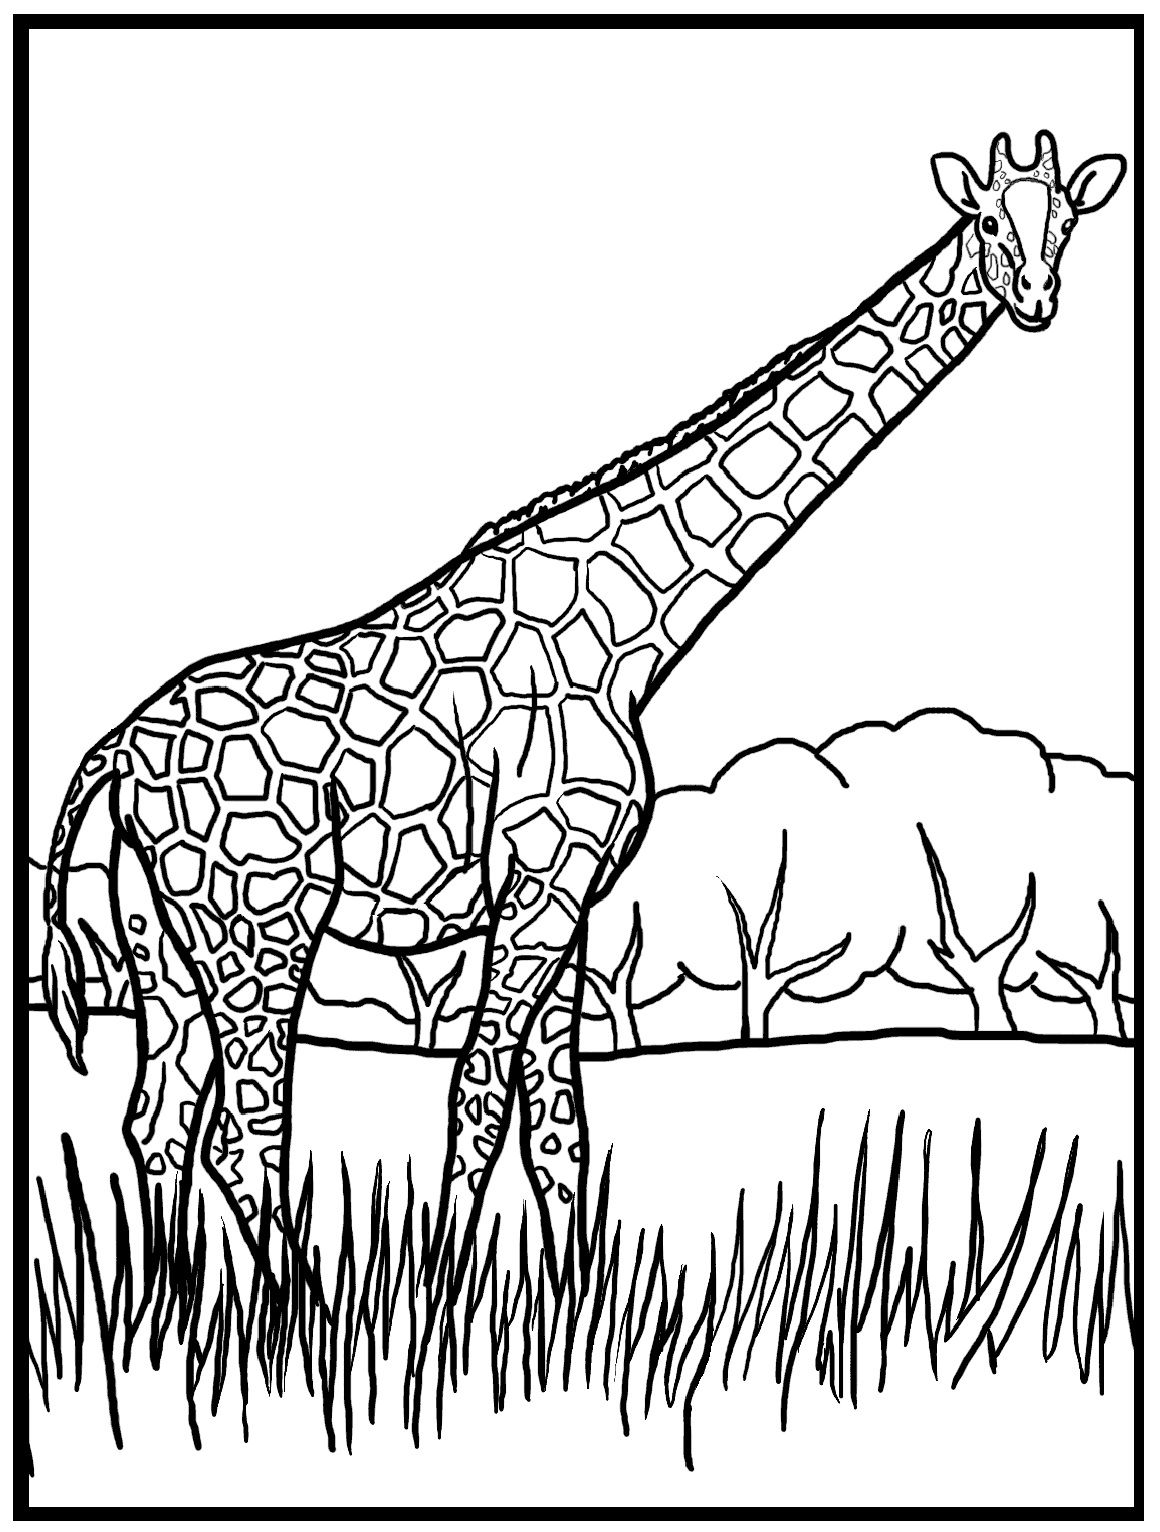 giraffe color page - Giraffes Coloring Pages